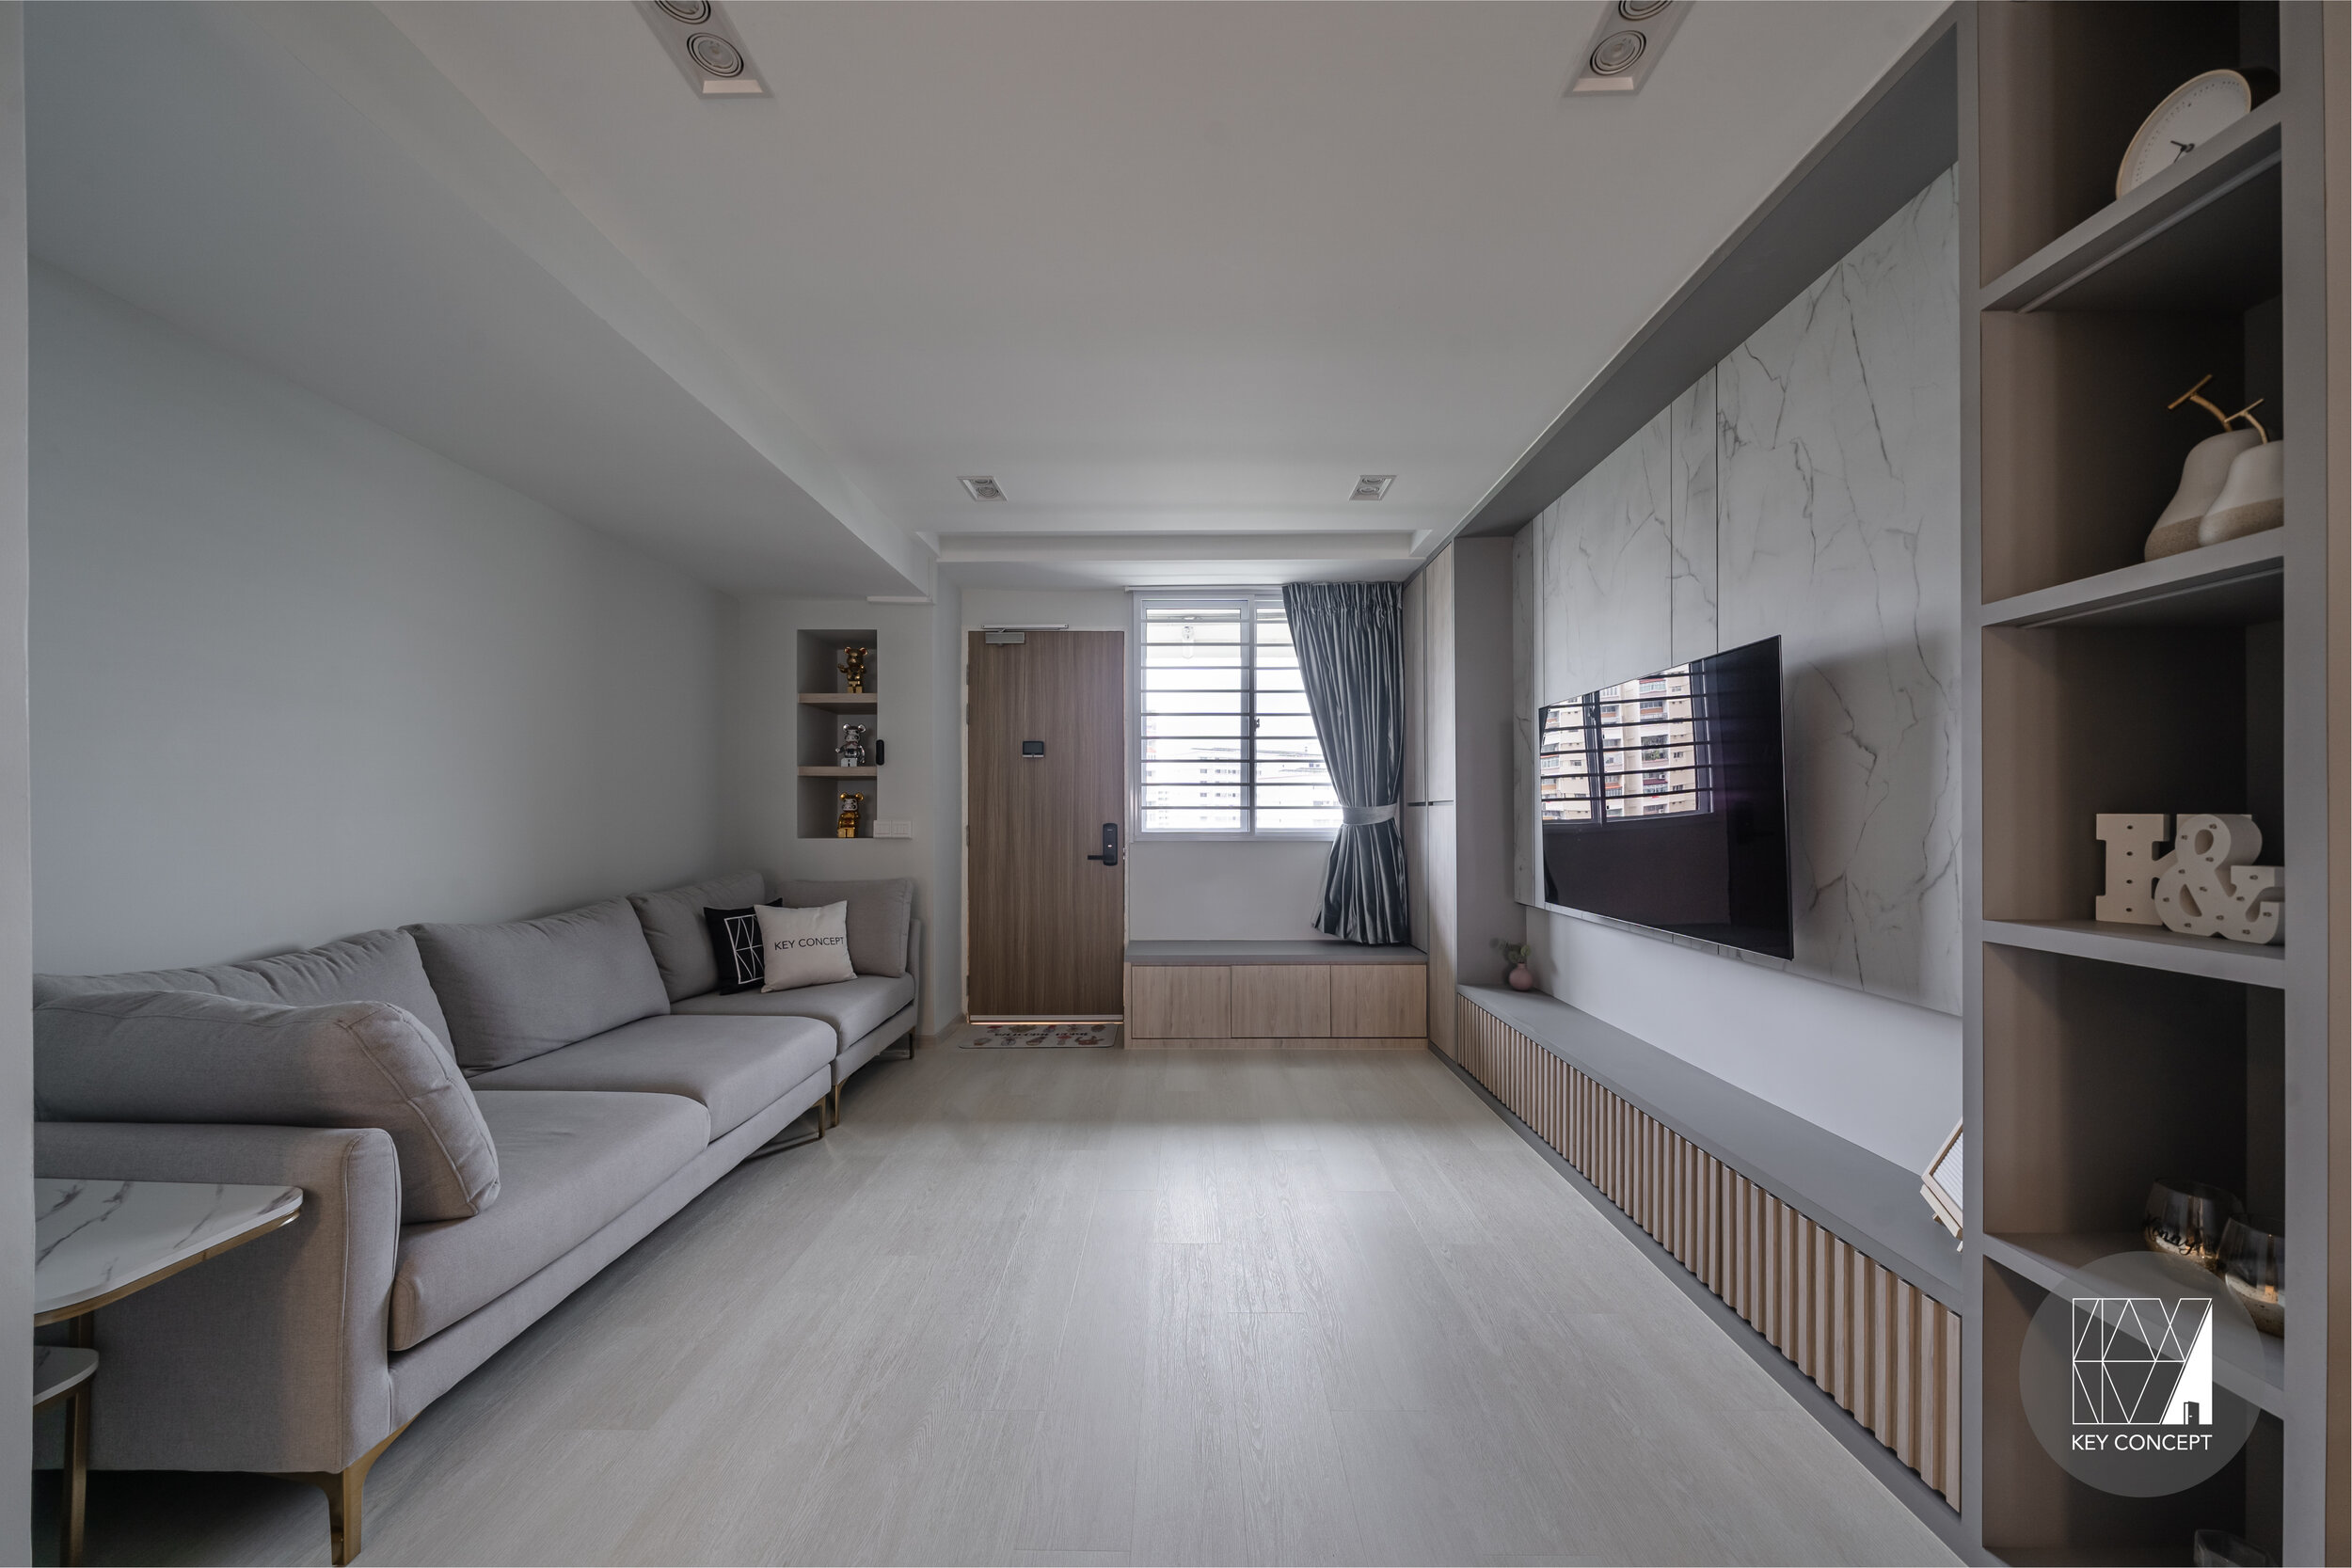 Best Interior Design Firms for your HDB renovation in Singapore - Key Concept